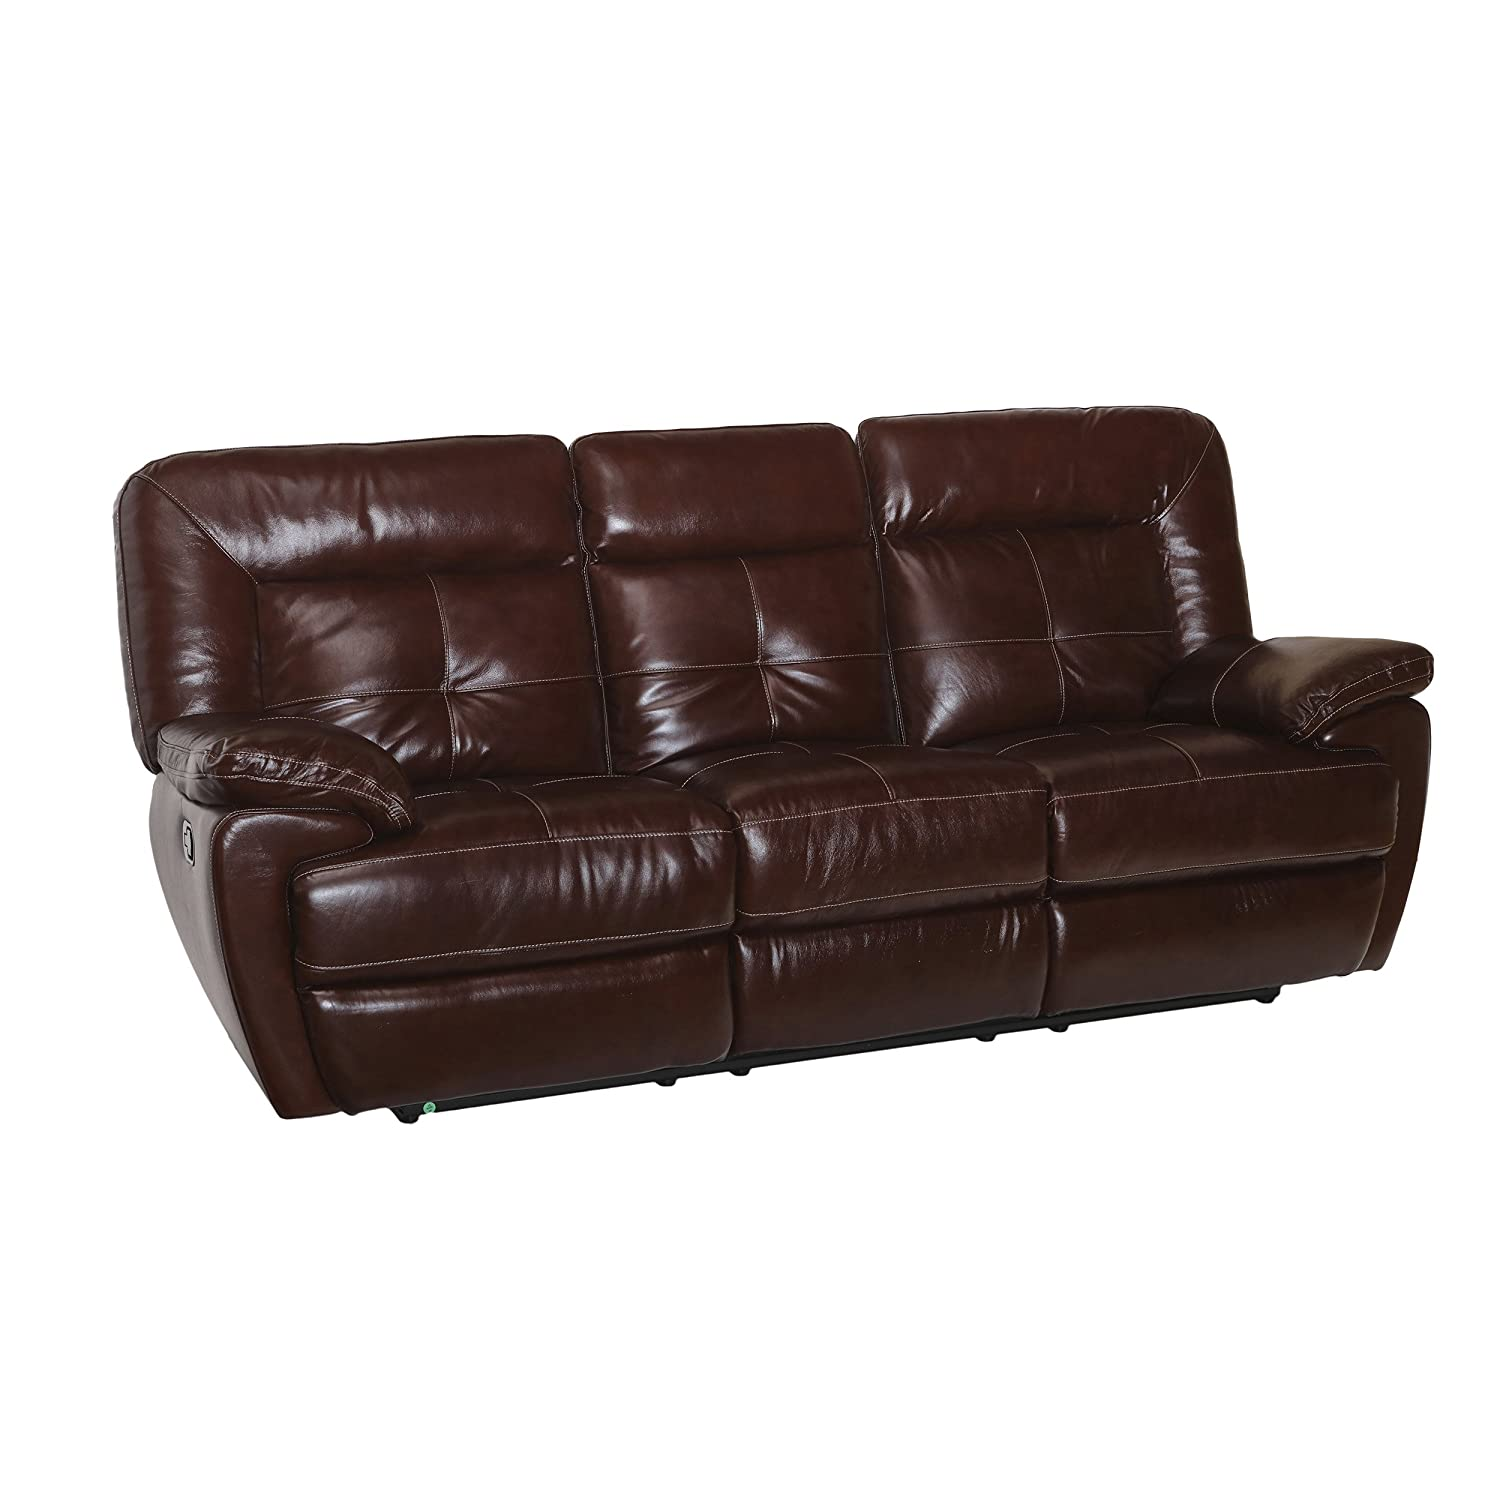 Amazon.com: Coja by Sofa4life Azusa Leather Recliner Sofa ...